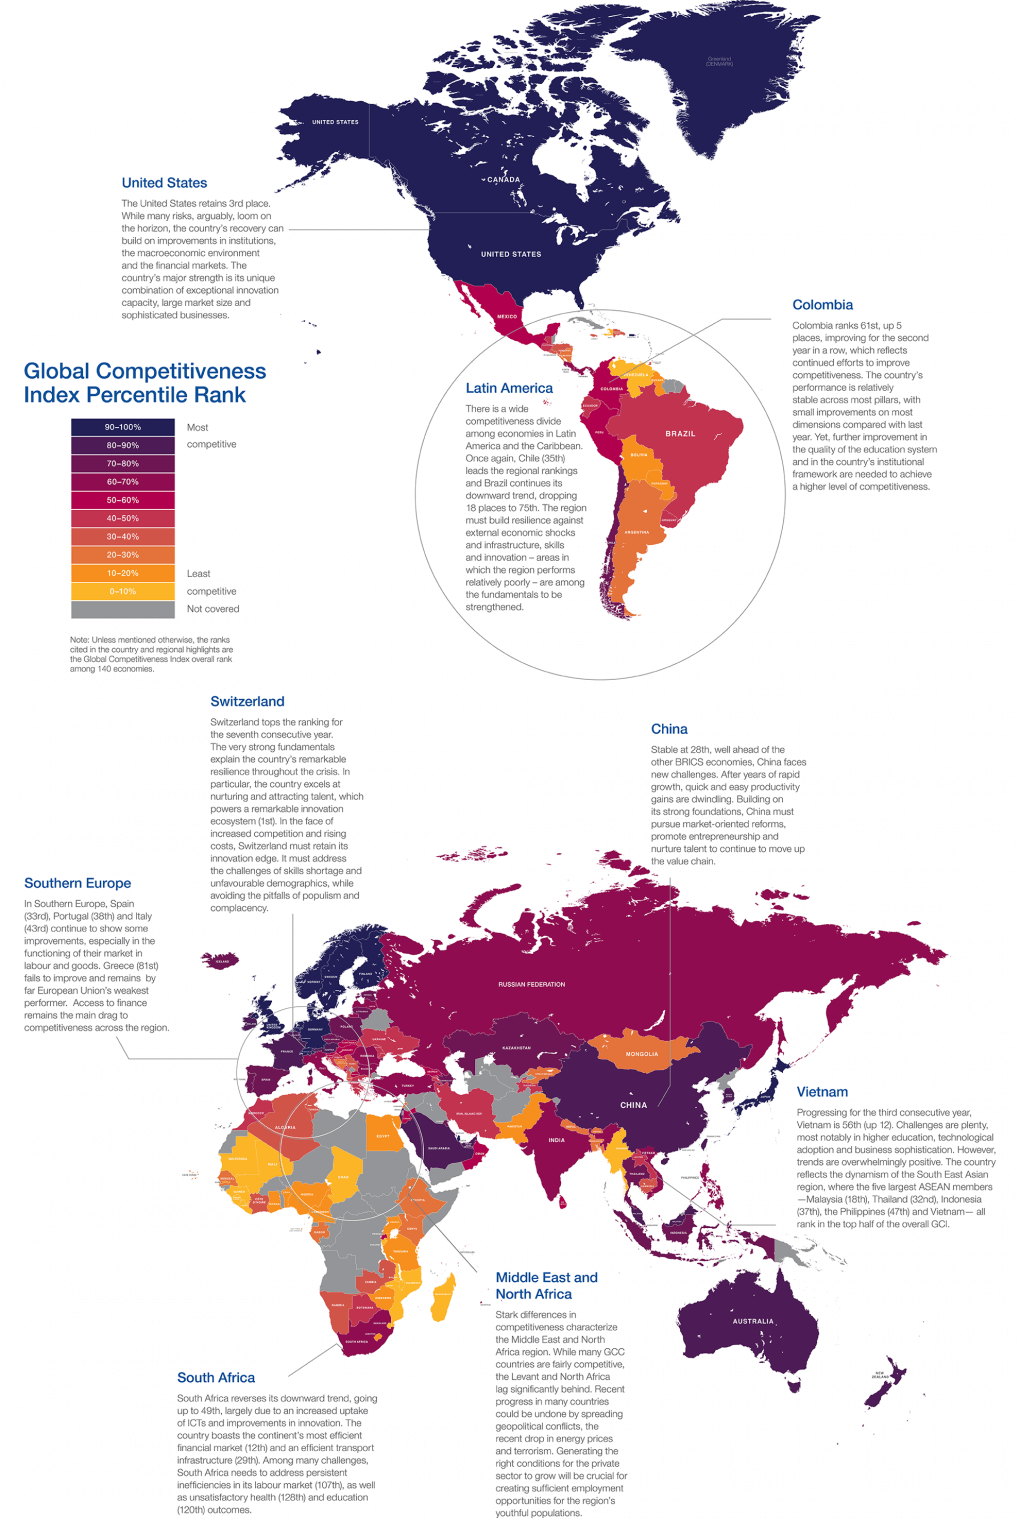 The Global Competitiveness Map